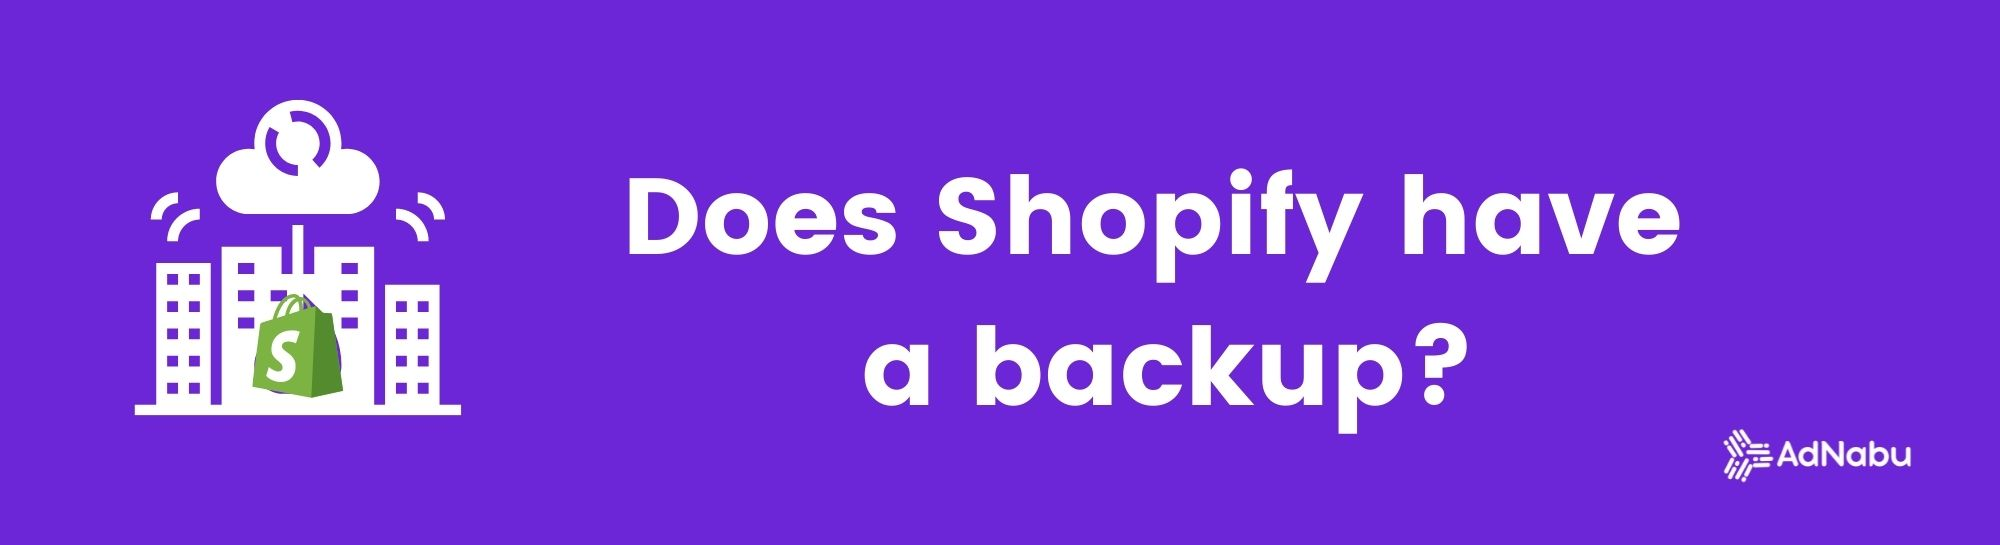 Does shopify have a backup